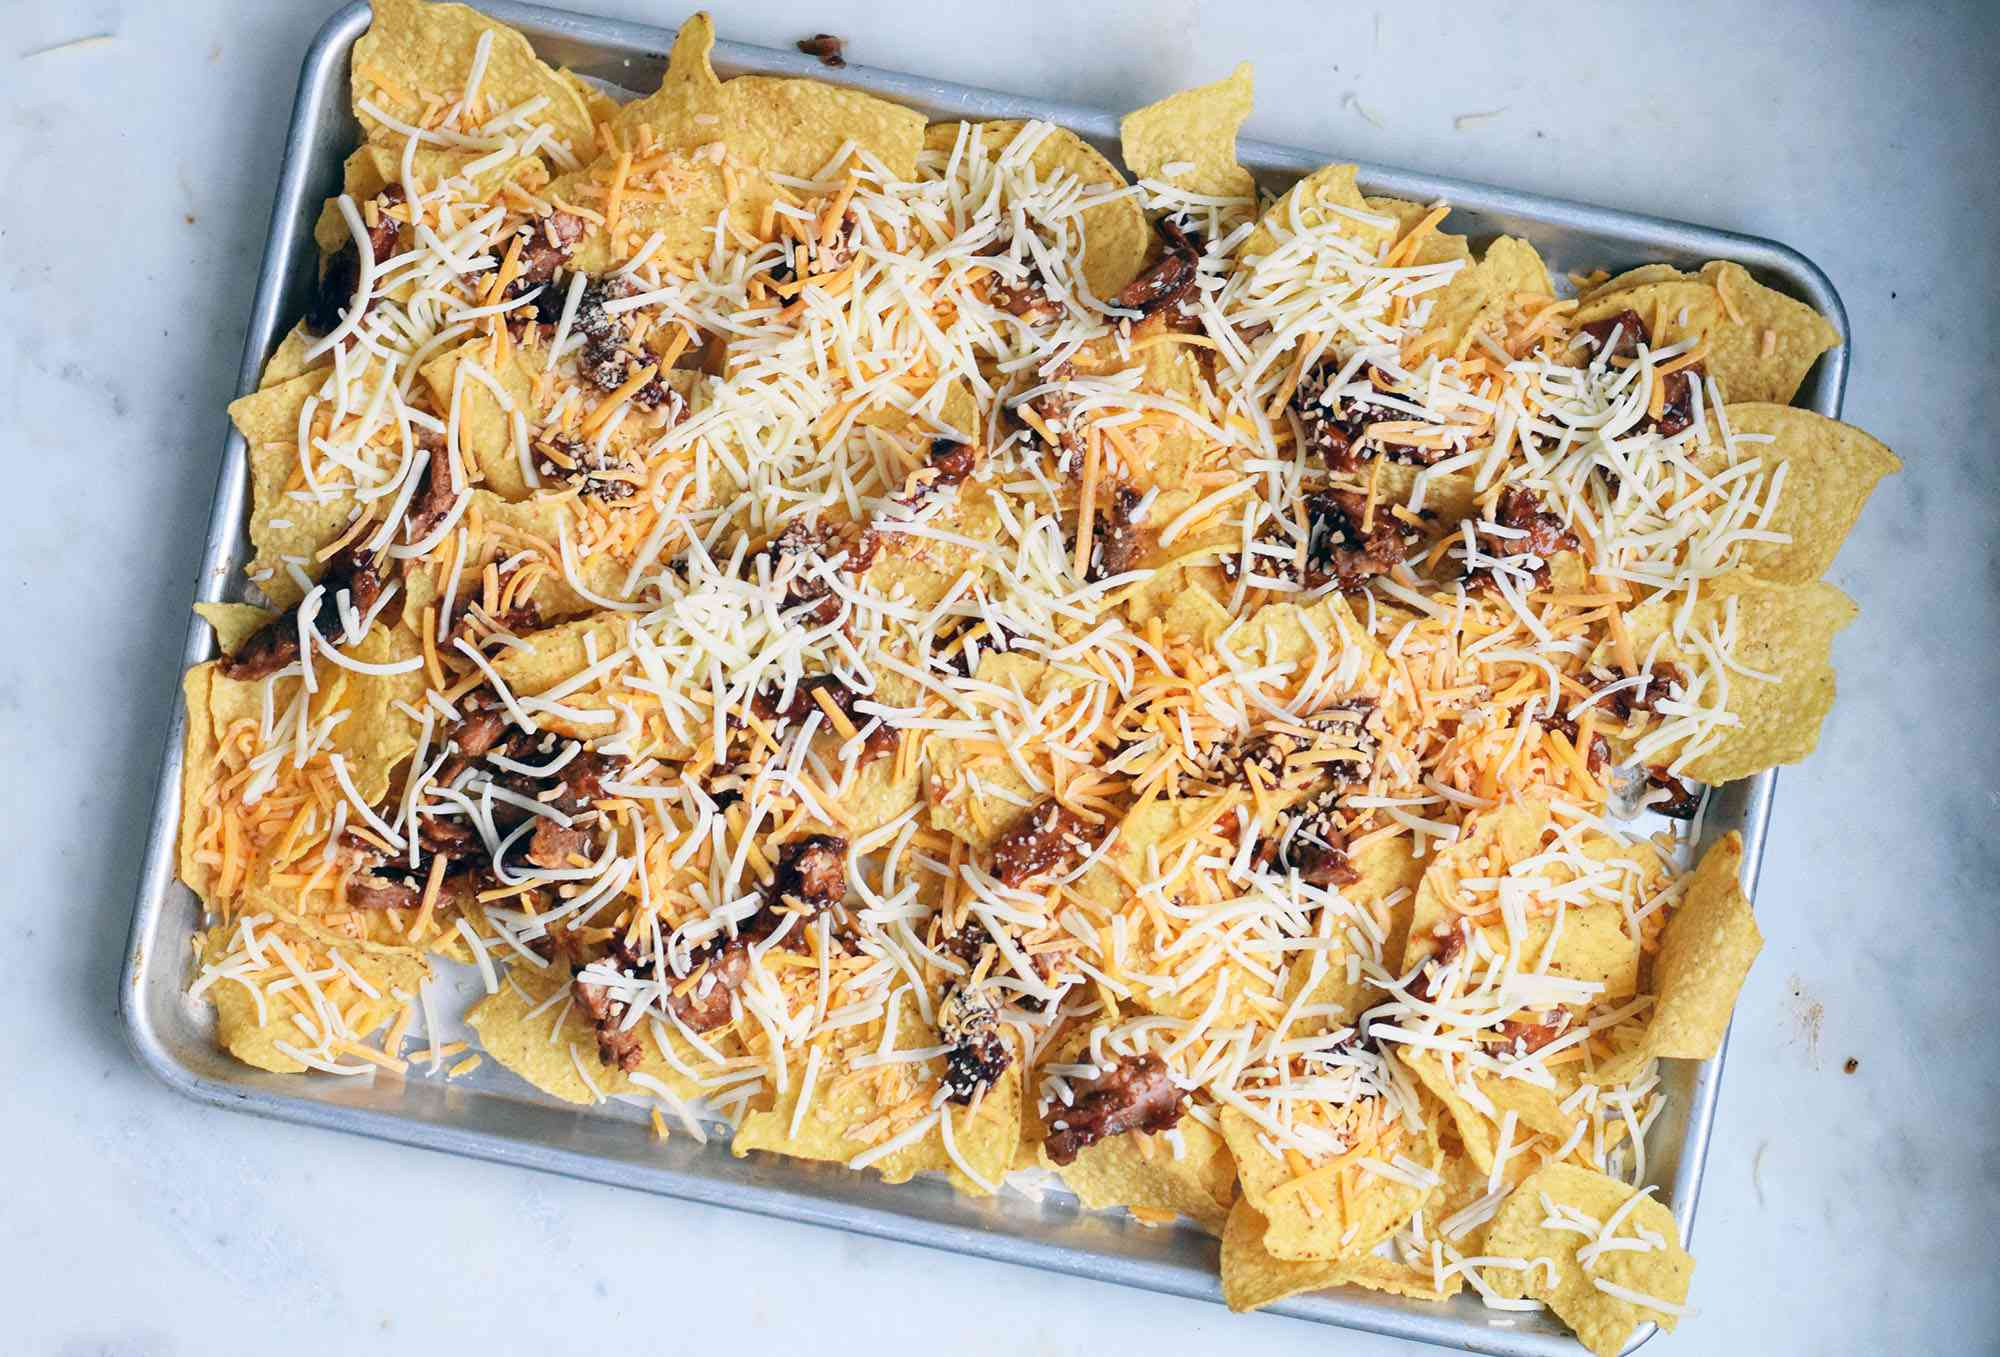 cheese and pulled pork over chips